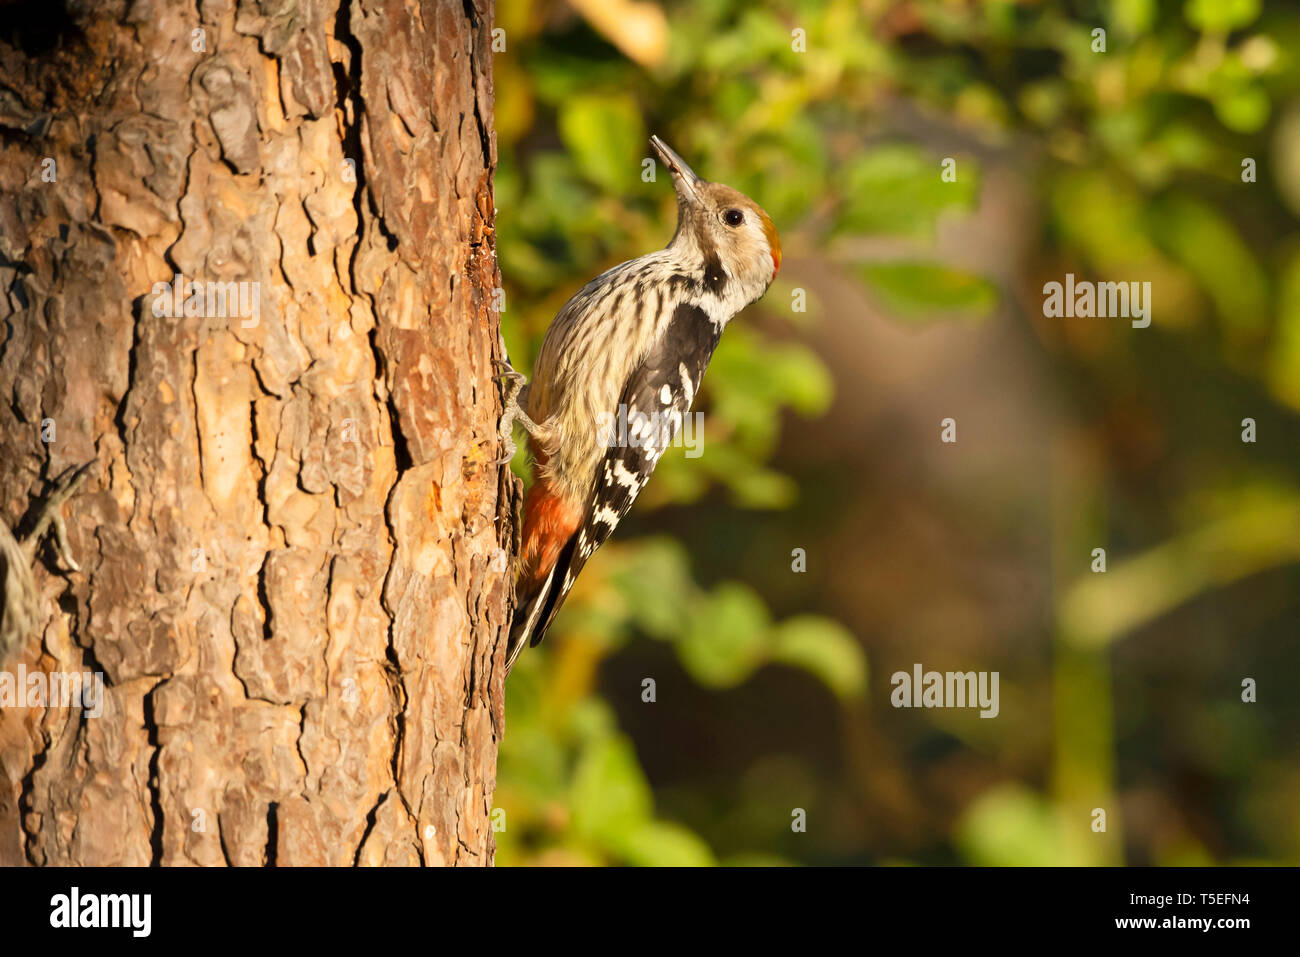 Brown-fronted woodpecker, Dendrocoptes auriceps, Sattal, Uttarakhand, India. Stock Photo